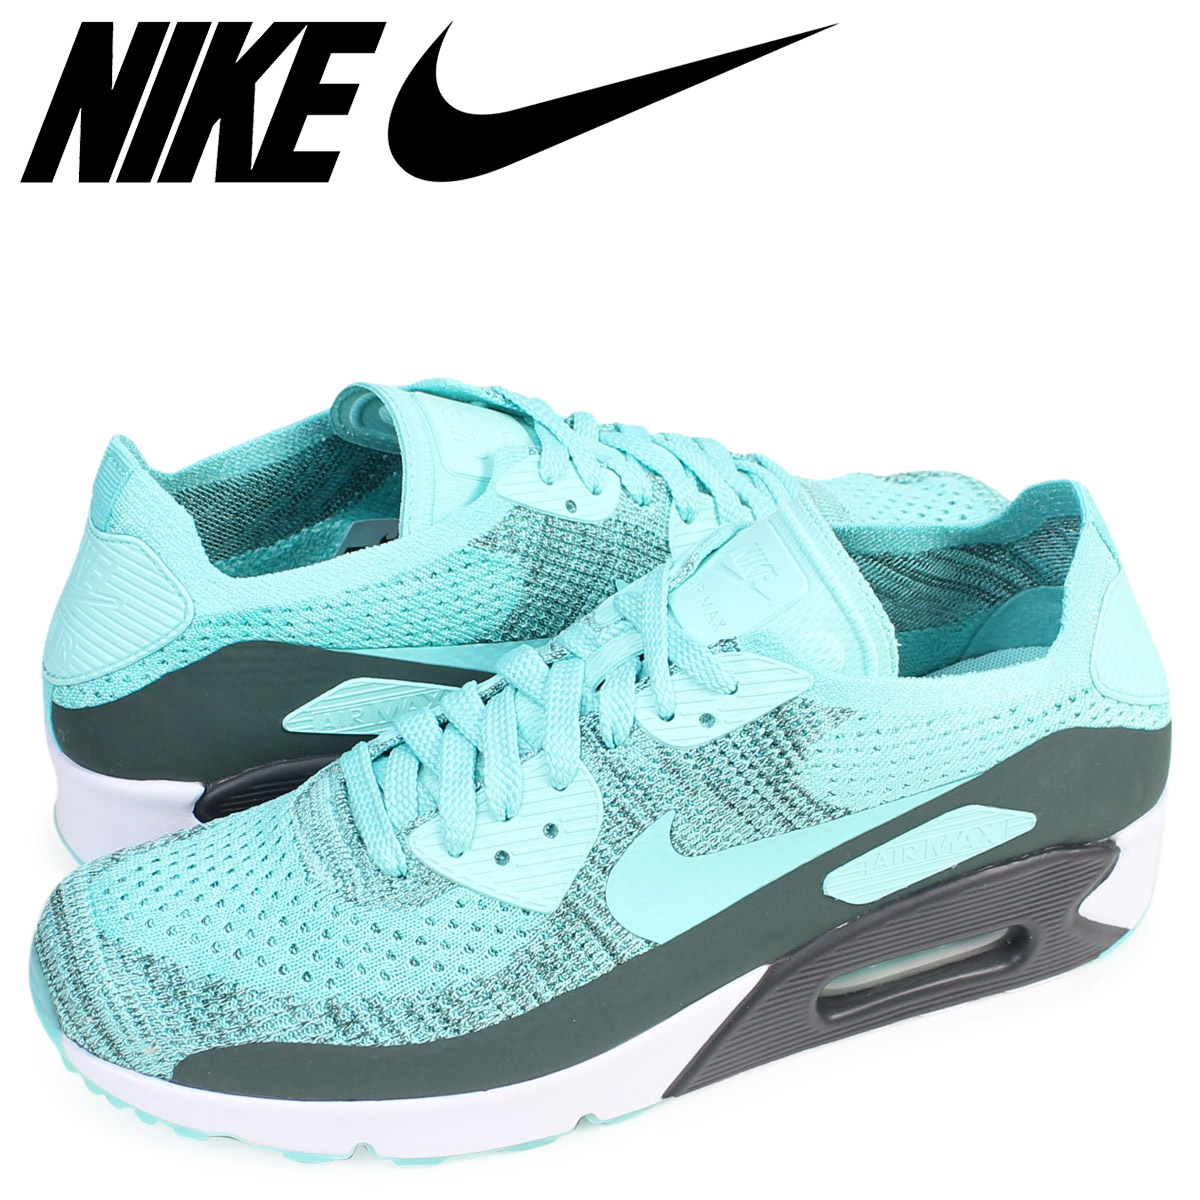 on sale 10d75 213e0 Whats up Sports Nike NIKE Air Max 90 ultra fly knit sneakers AIR MAX 90  ULTRA 2.0 FLYKNIT 875,943-301 mens shoes light blue 715 Shinnyu load   Rakuten ...